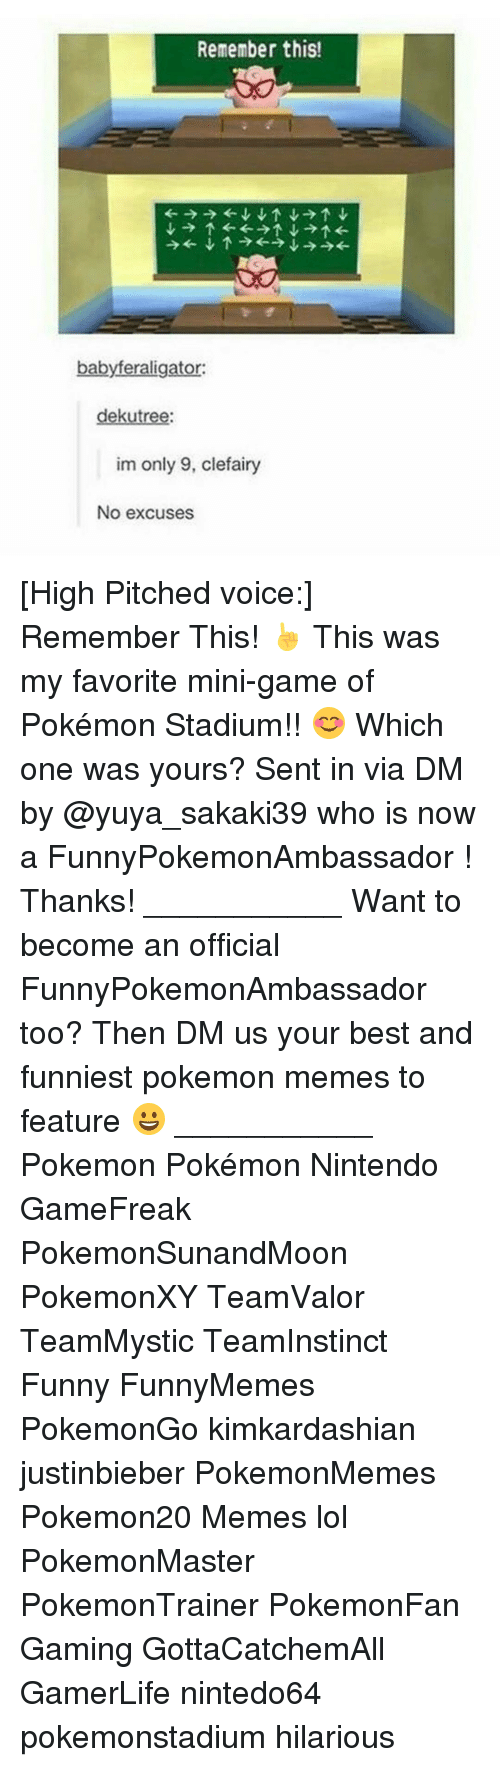 Memes, 🤖, and Mini: Remember this!  babyferaligator:  dekutree:  im only 9, clefairy  No excuses [High Pitched voice:] Remember This! ☝ This was my favorite mini-game of Pokémon Stadium!! 😊 Which one was yours? Sent in via DM by @yuya_sakaki39 who is now a FunnyPokemonAmbassador ! Thanks! ___________ Want to become an official FunnyPokemonAmbassador too? Then DM us your best and funniest pokemon memes to feature 😀 ___________ Pokemon Pokémon Nintendo GameFreak PokemonSunandMoon PokemonXY TeamValor TeamMystic TeamInstinct Funny FunnyMemes PokemonGo kimkardashian justinbieber PokemonMemes Pokemon20 Memes lol ポケットモンスター PokemonMaster PokemonTrainer PokemonFan Gaming GottaCatchemAll GamerLife nintedo64 pokemonstadium hilarious